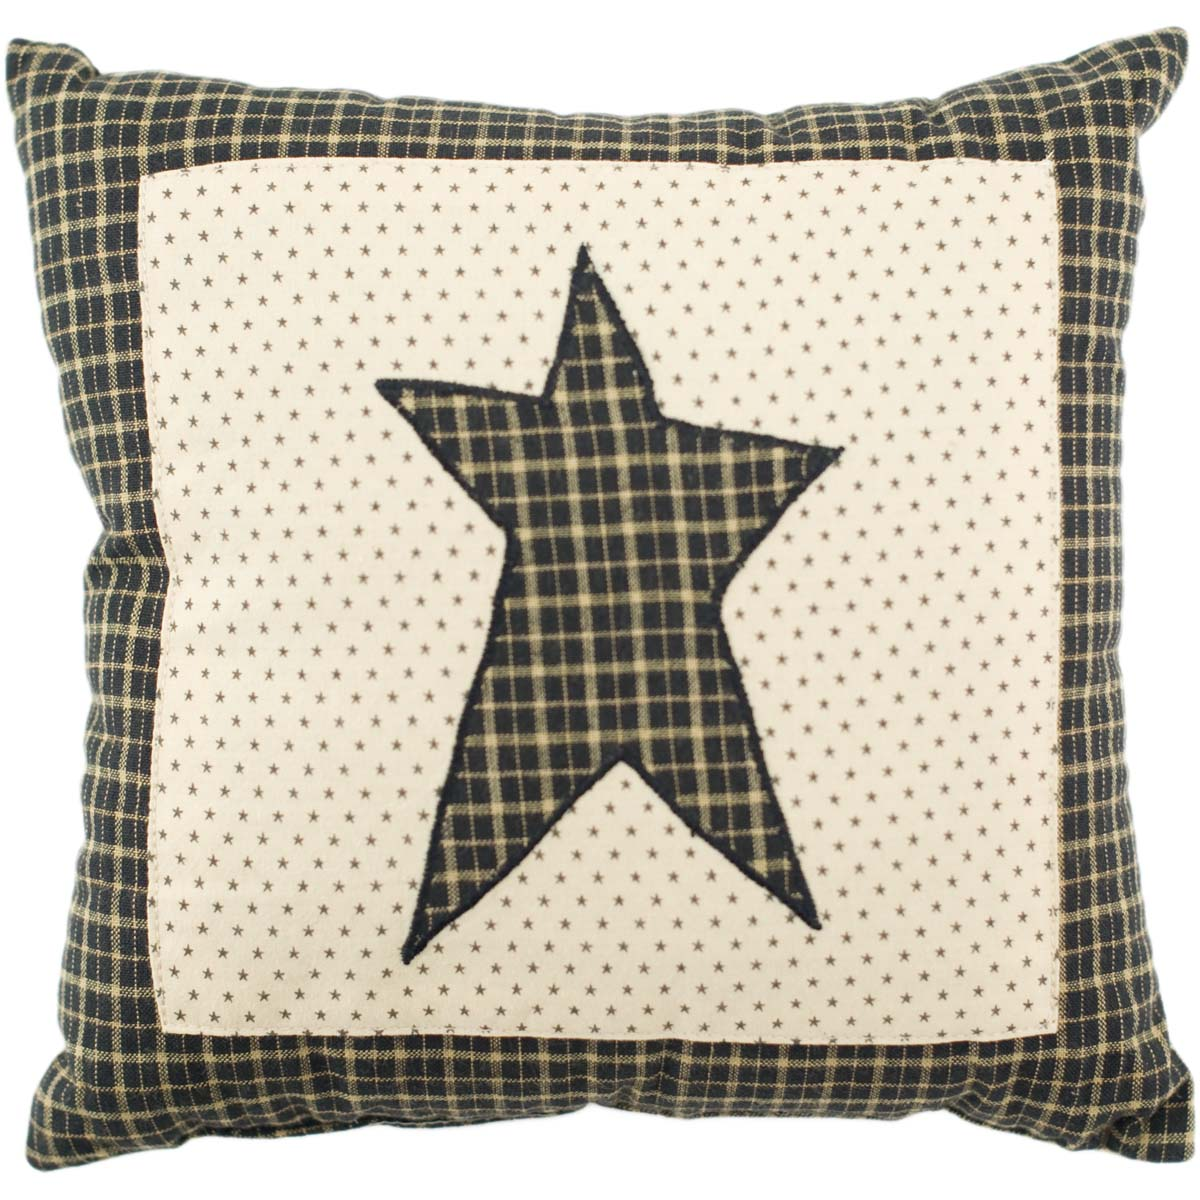 Country Black Primitive Bedding Prim Grove Star Cotton Appliqued Square 10x10 Pillow